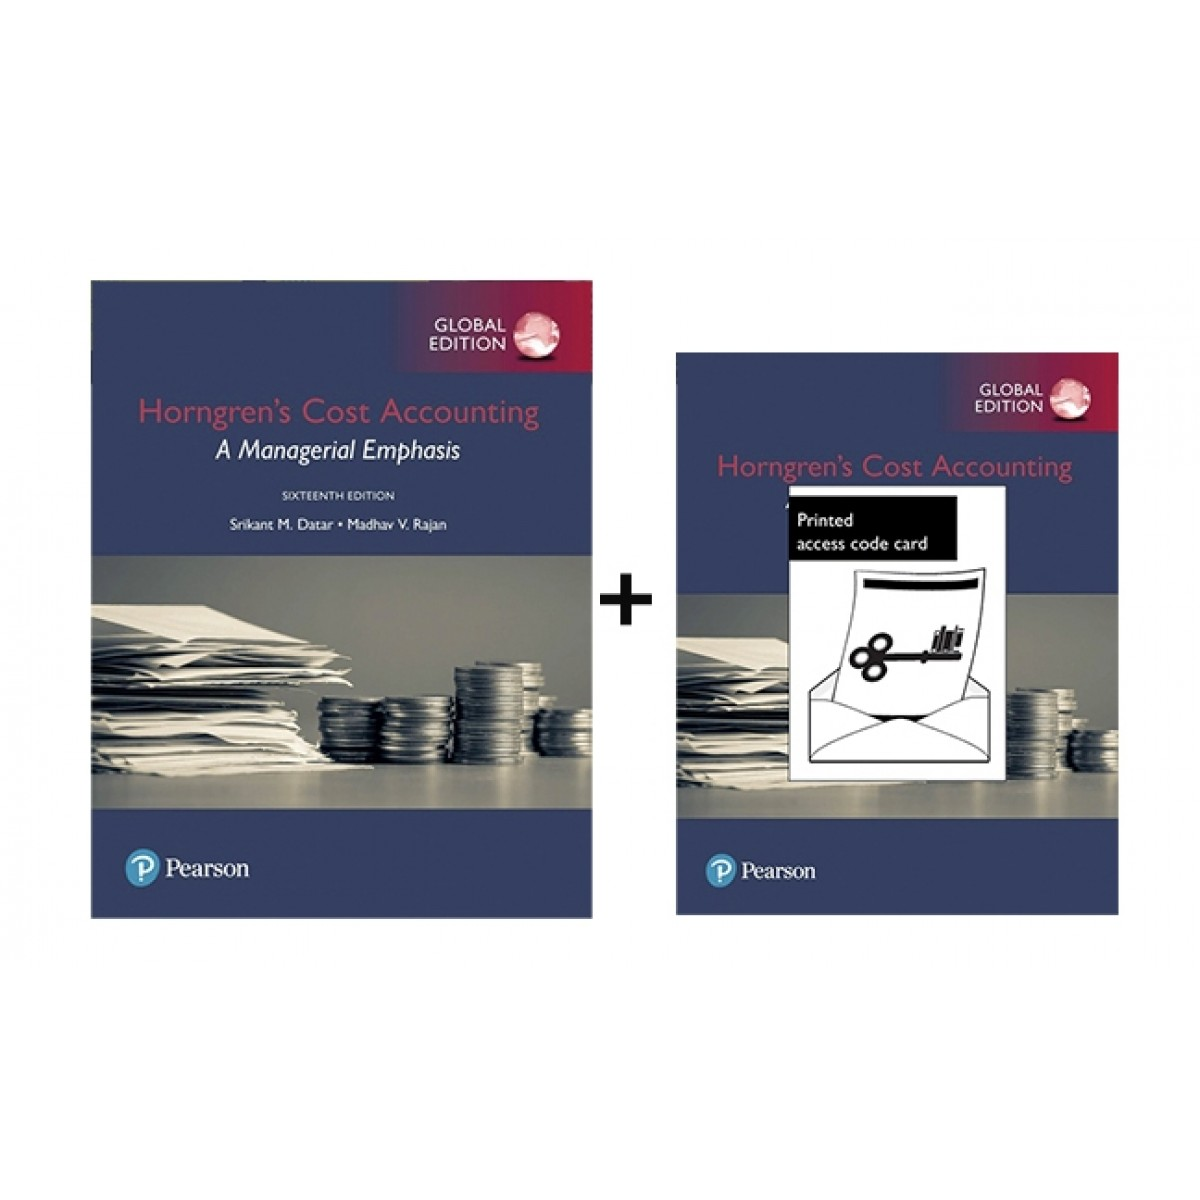 Horngren's Cost Accounting: A Managerial Emphasis, Global Edition + MyLab Accounting with eText